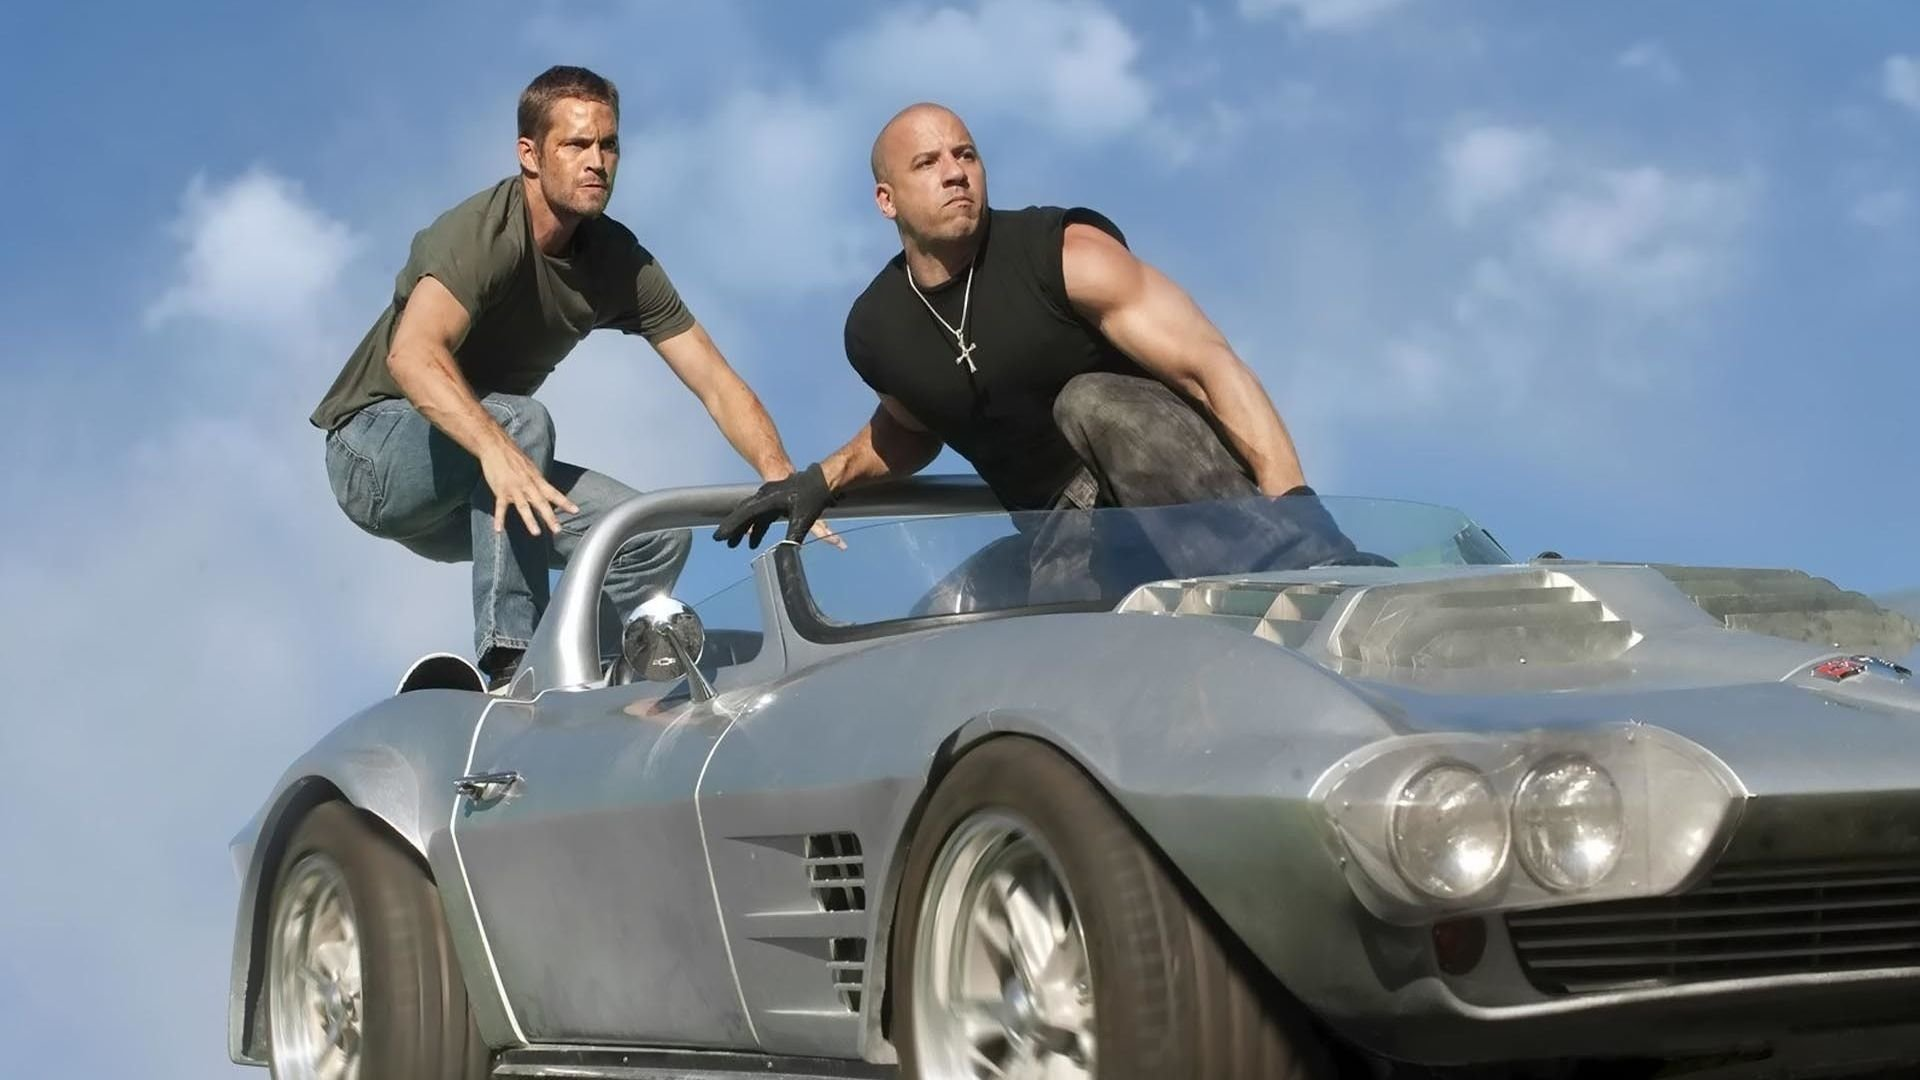 Fast and Furious wallpapers 1920x1080 Full HD (1080p) desktop backgrounds